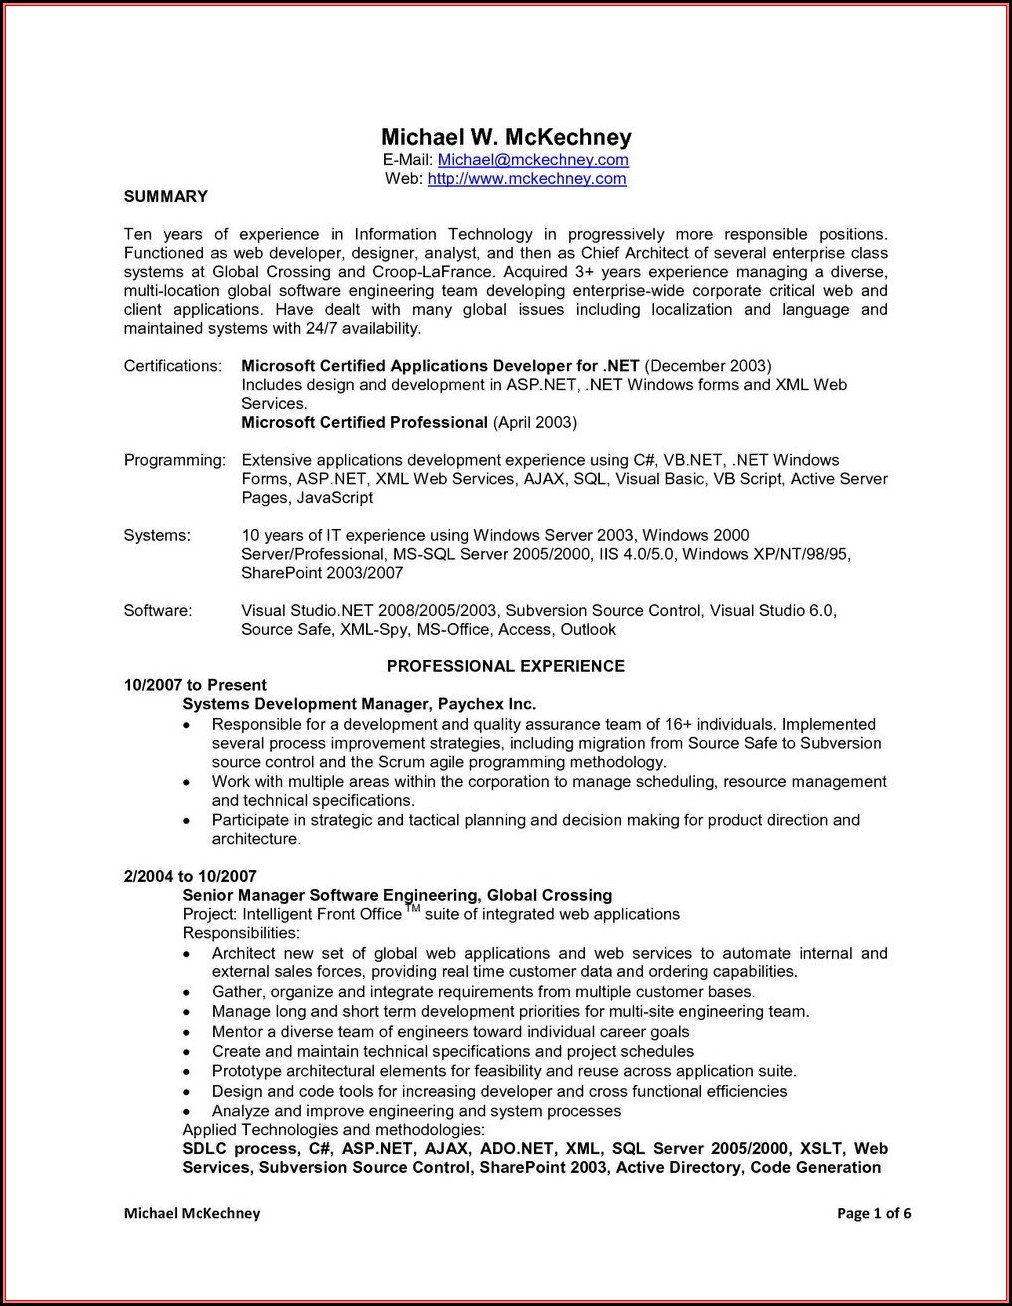 Sample Resume For .net Developer With 1 Year Experience